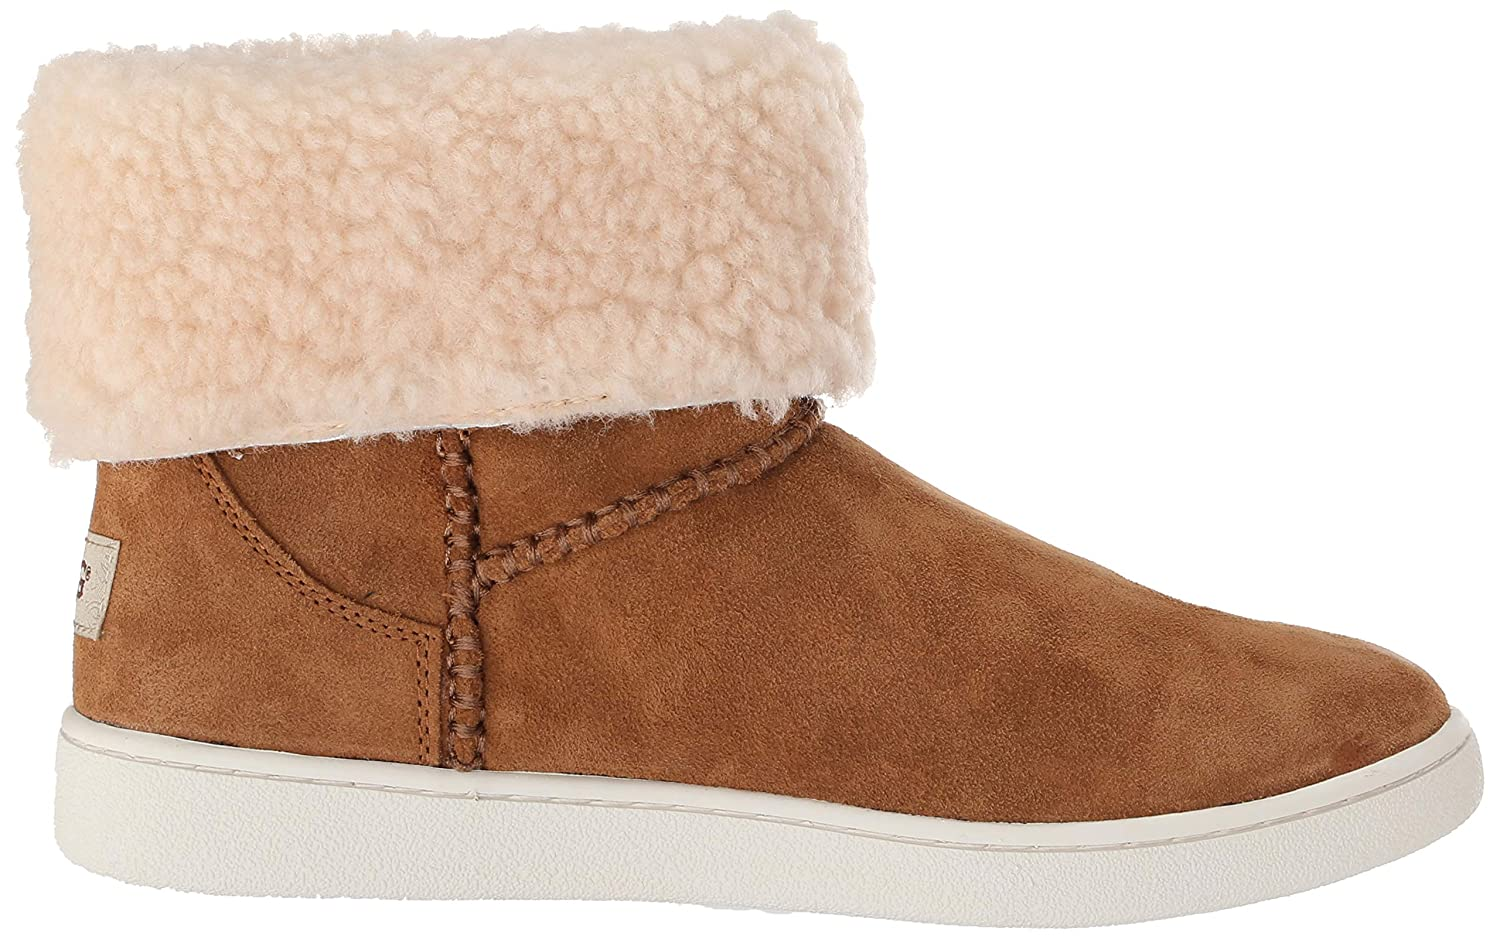 Women's Mika Classic Suede Slip On Sneakers